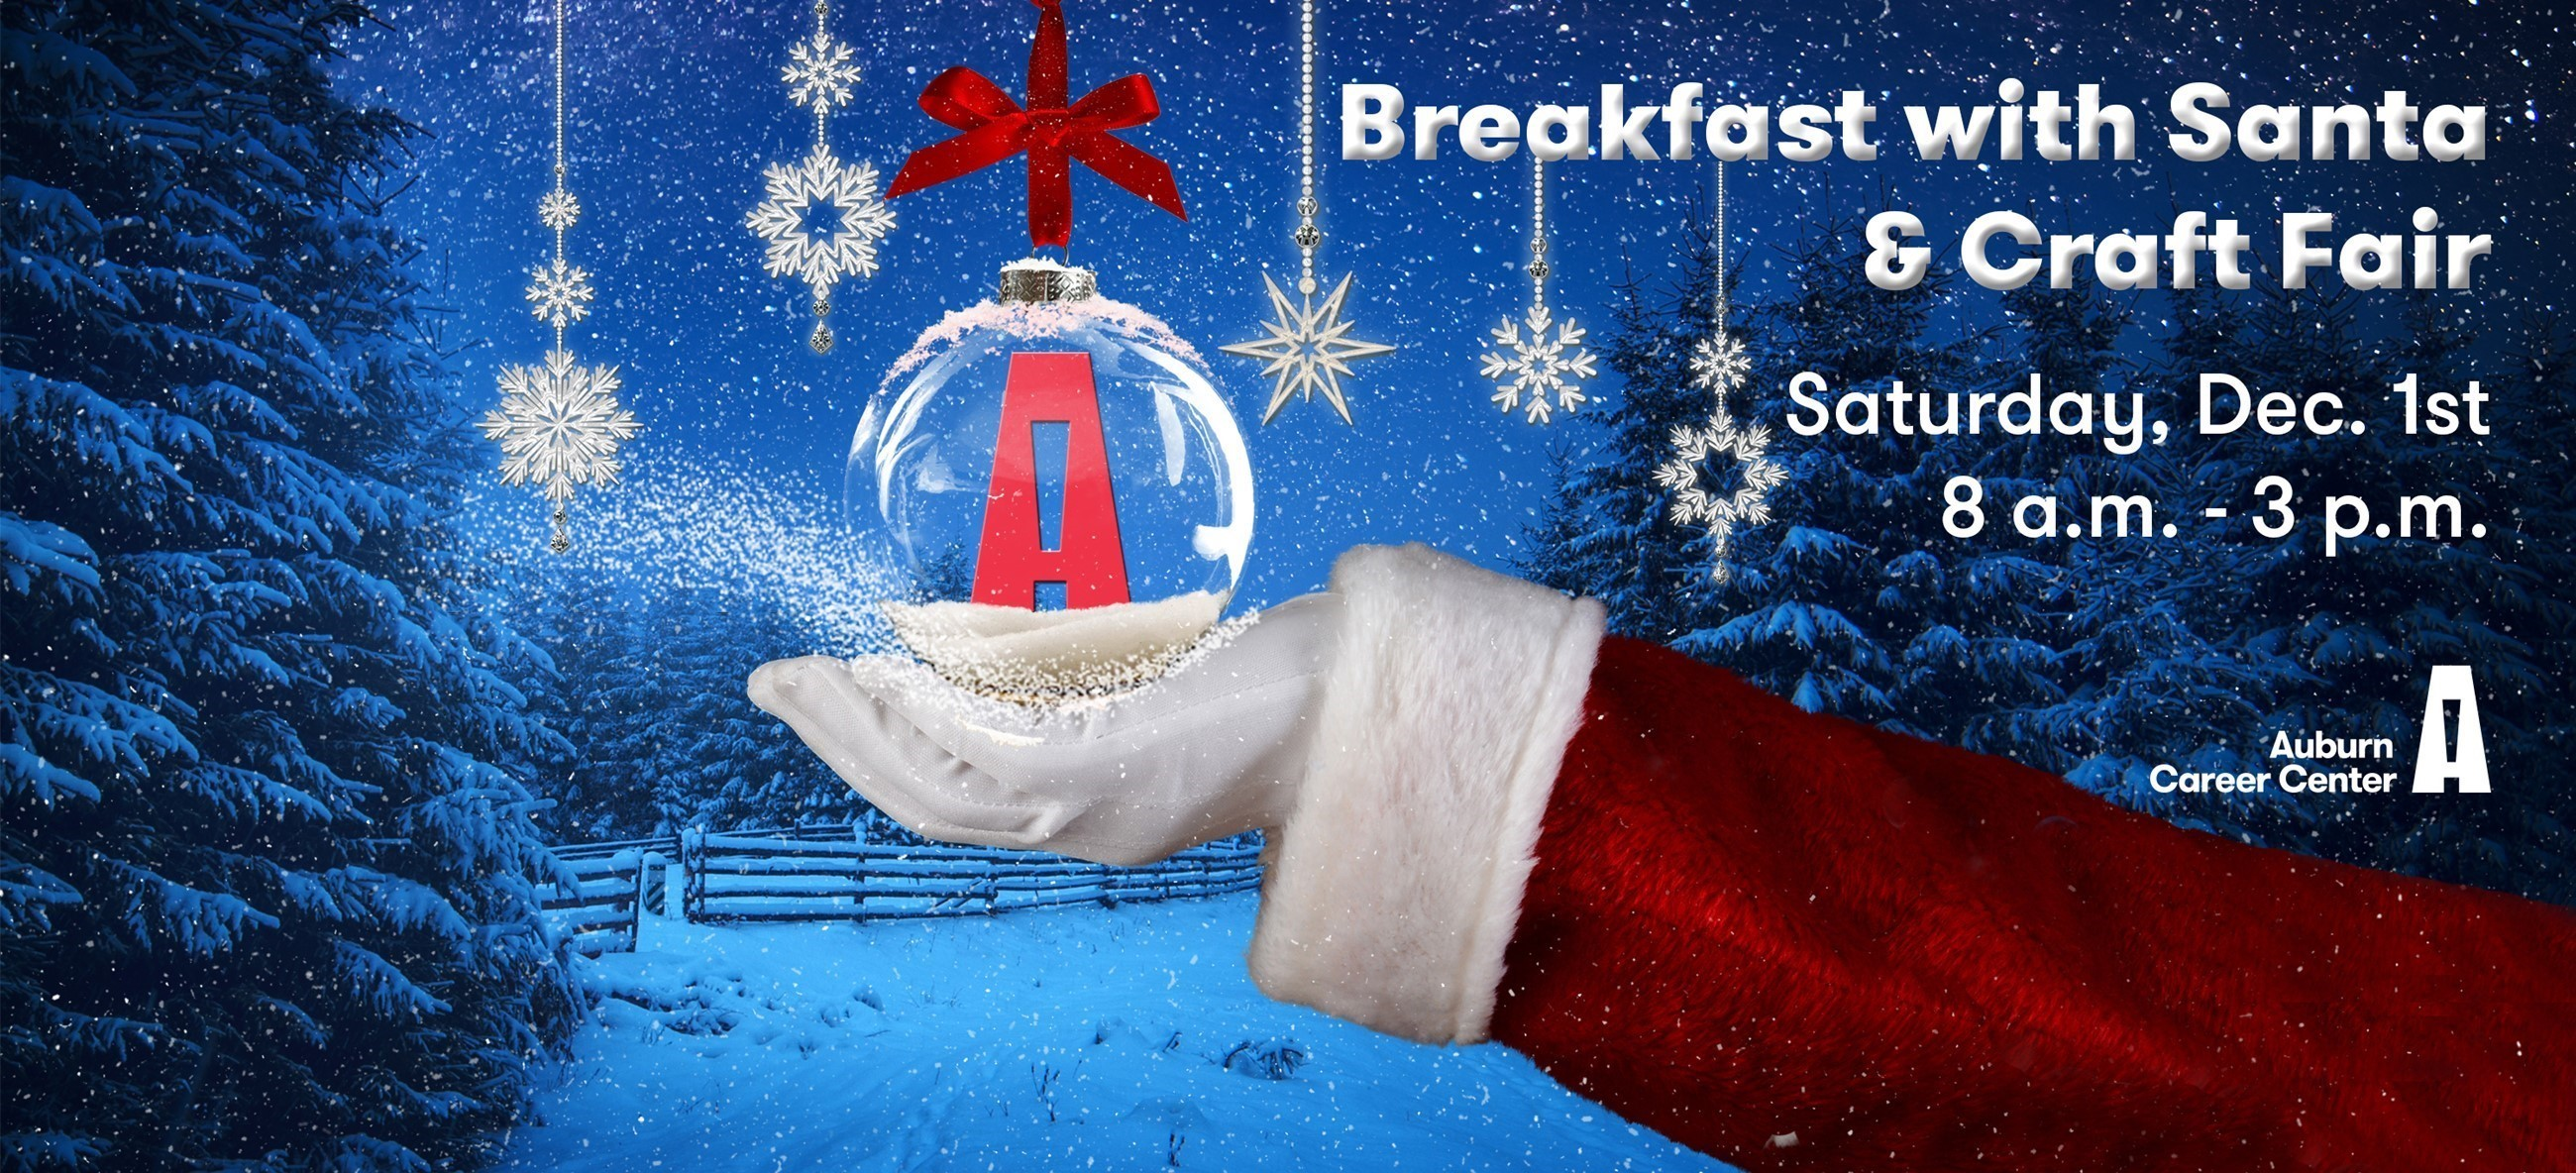 Santa hand holding ornament for Breakfast with Santa & Craft Fair Dec. 1